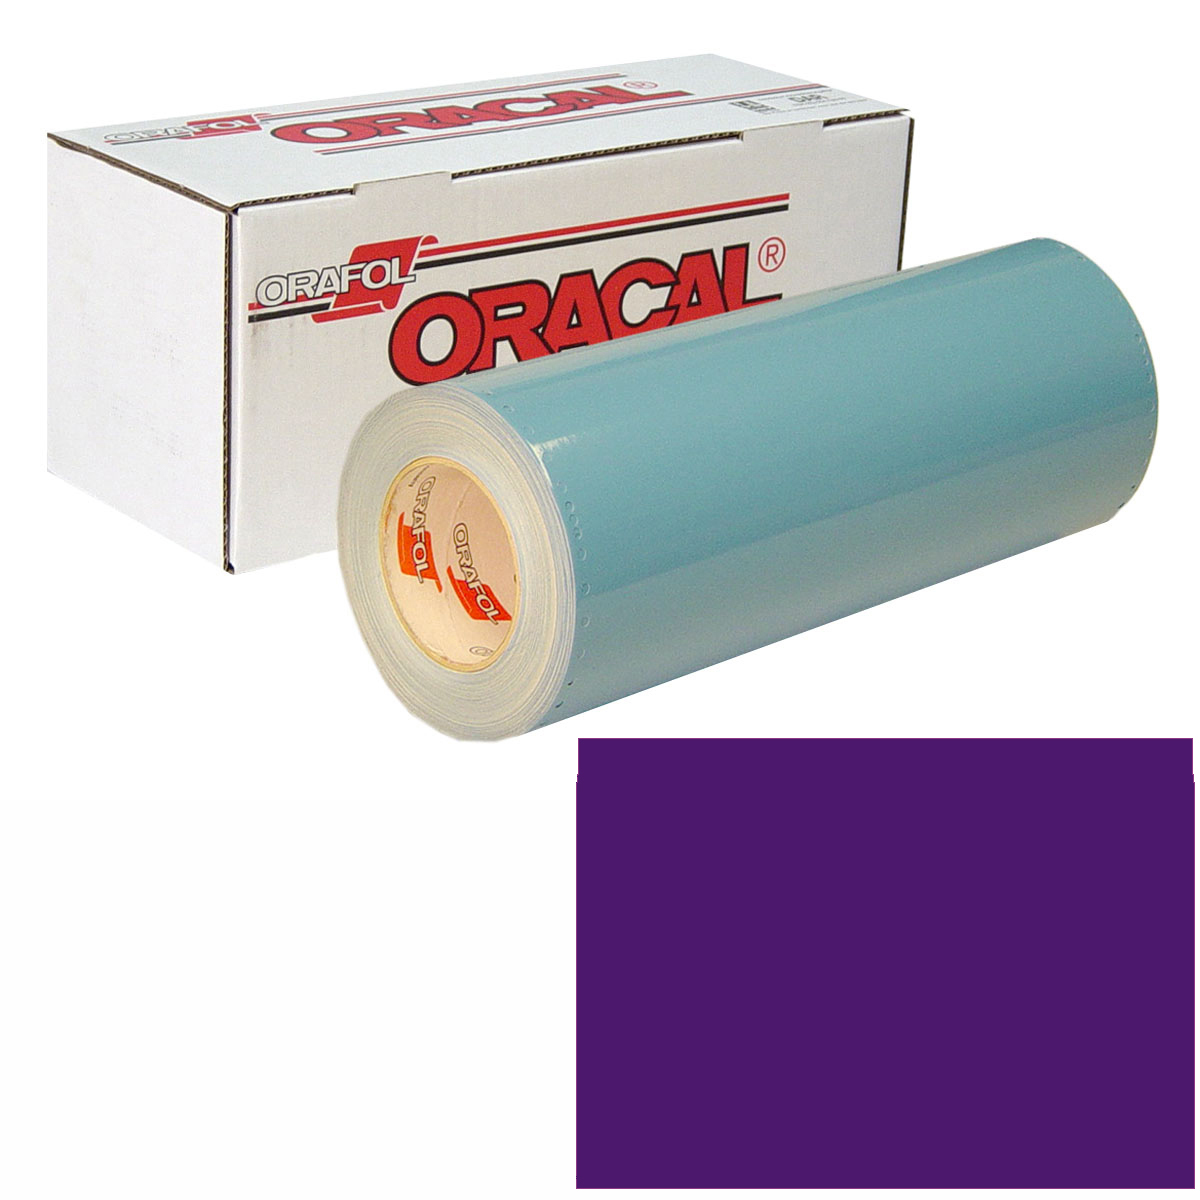 ORACAL 751 15in X 50yd 040 Violet